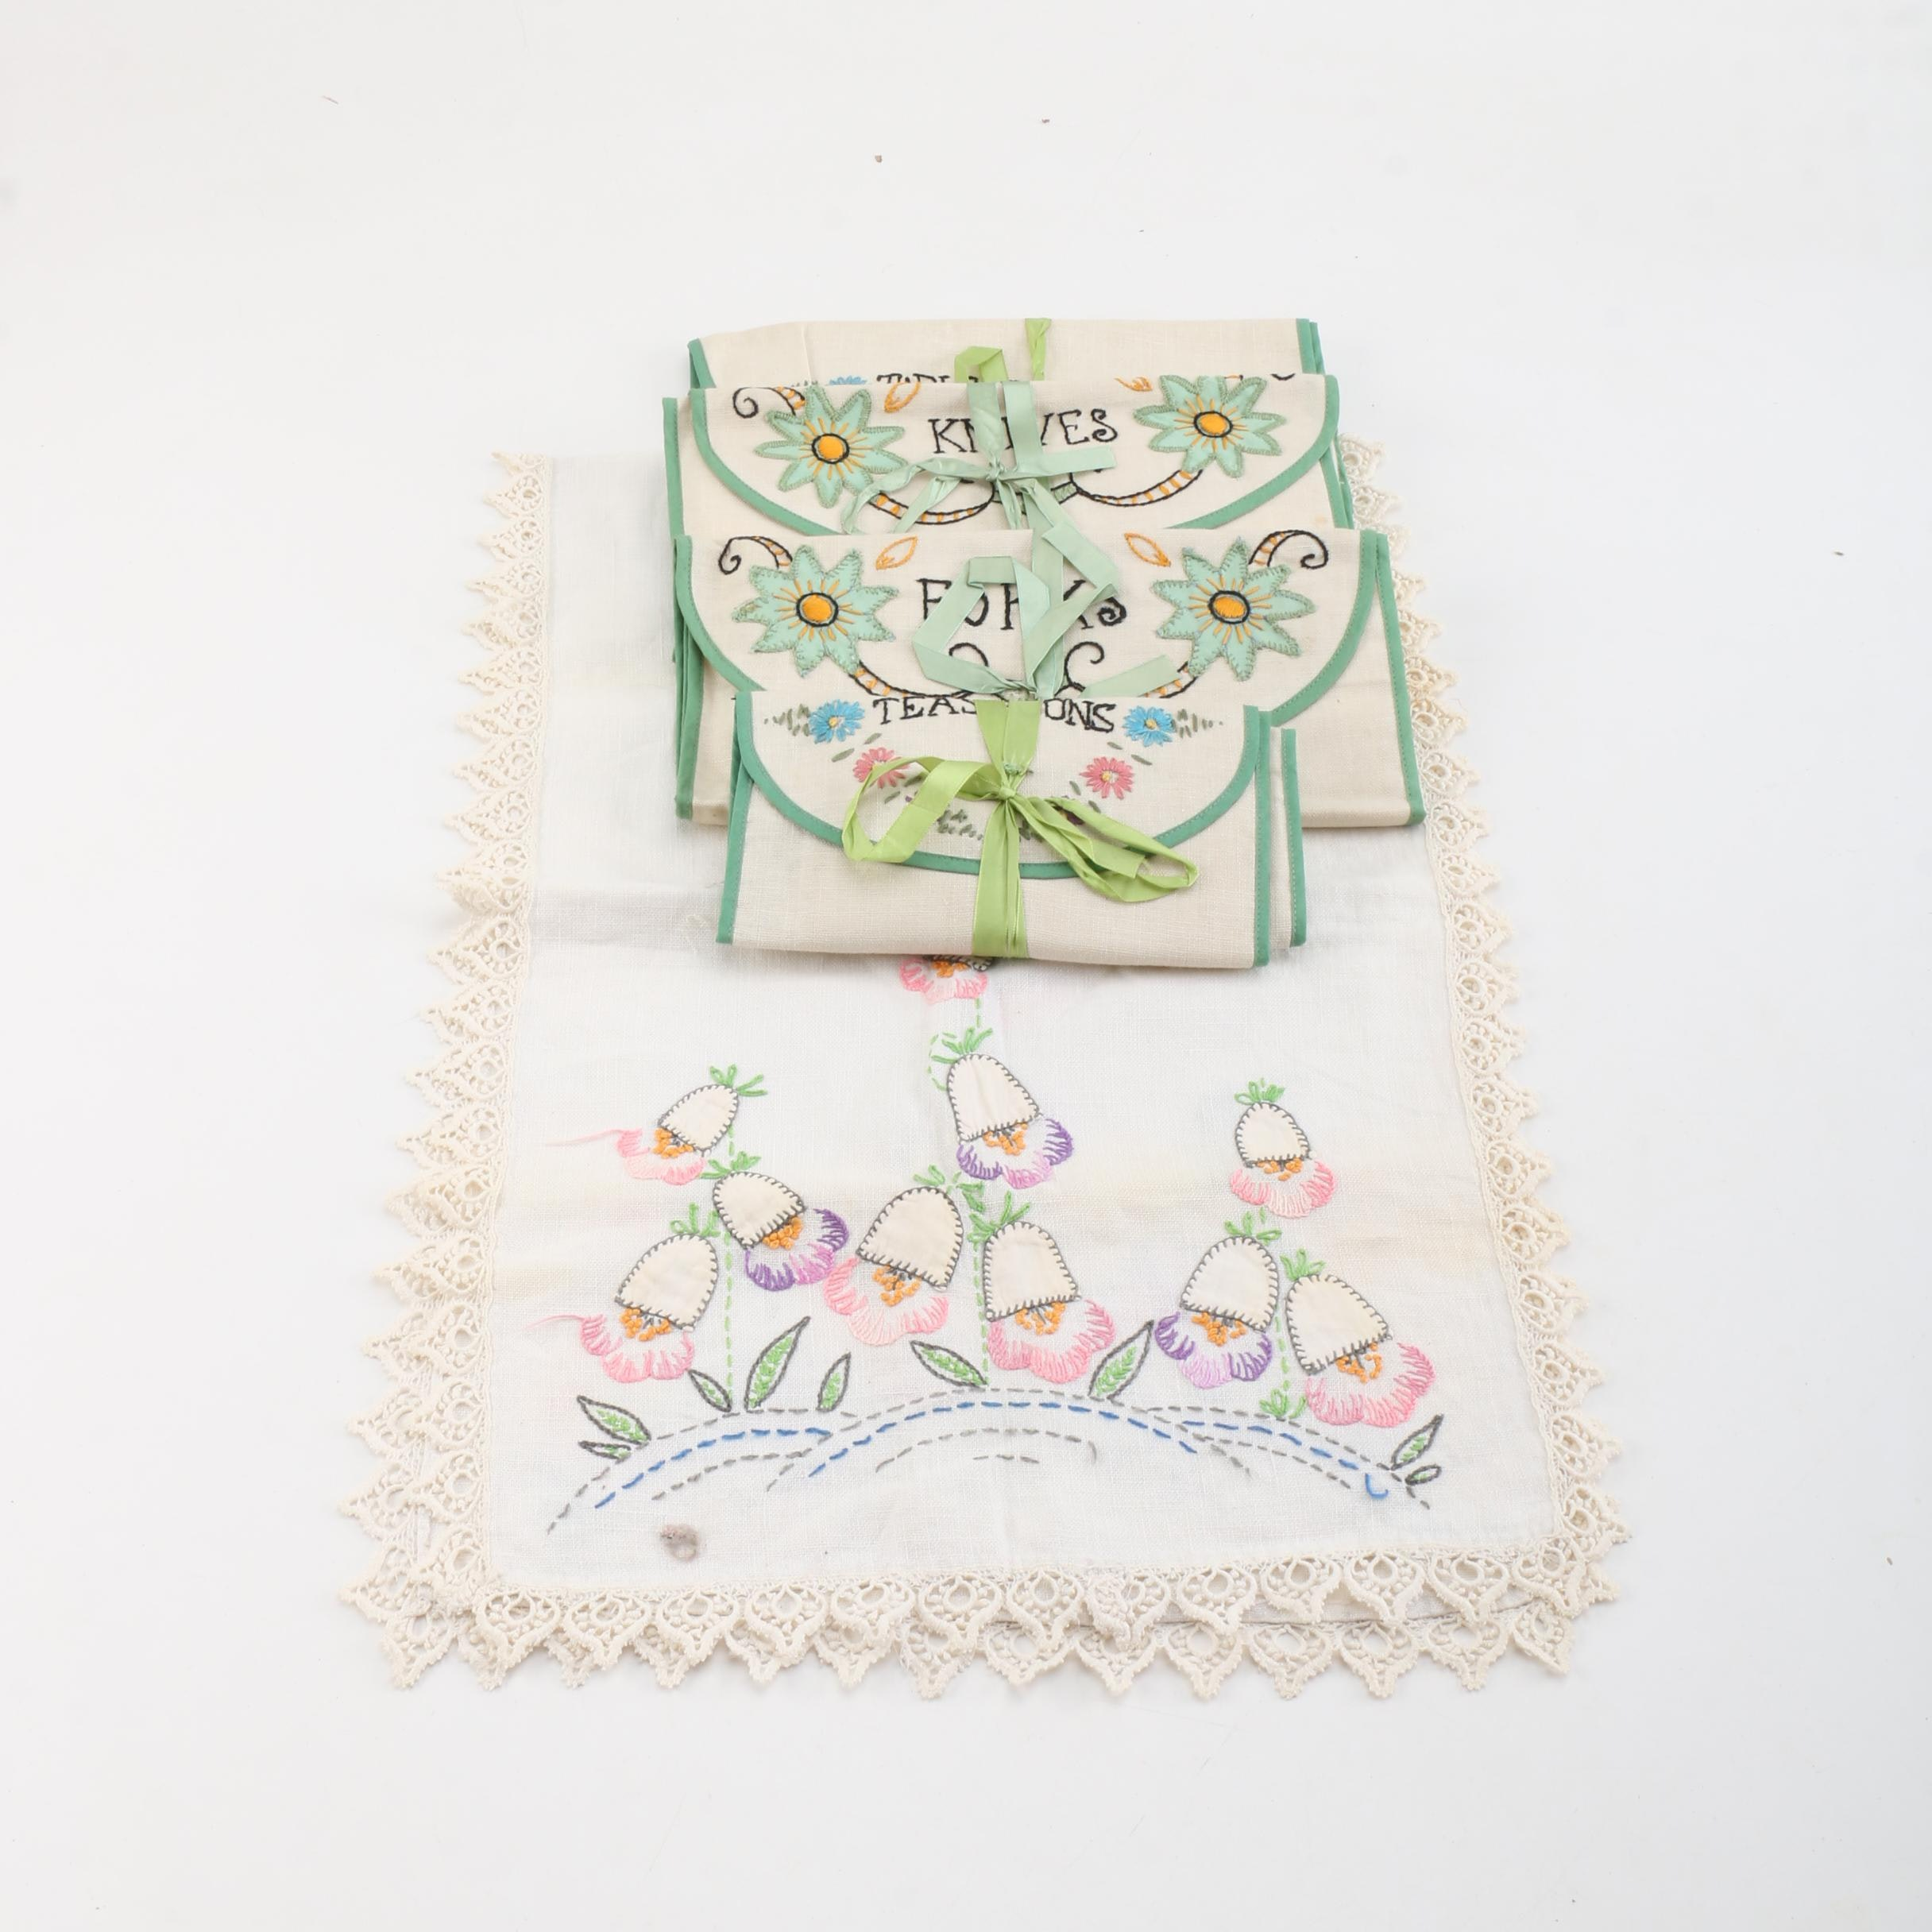 Vintage Embroidered Flatware Bags and Table Runner